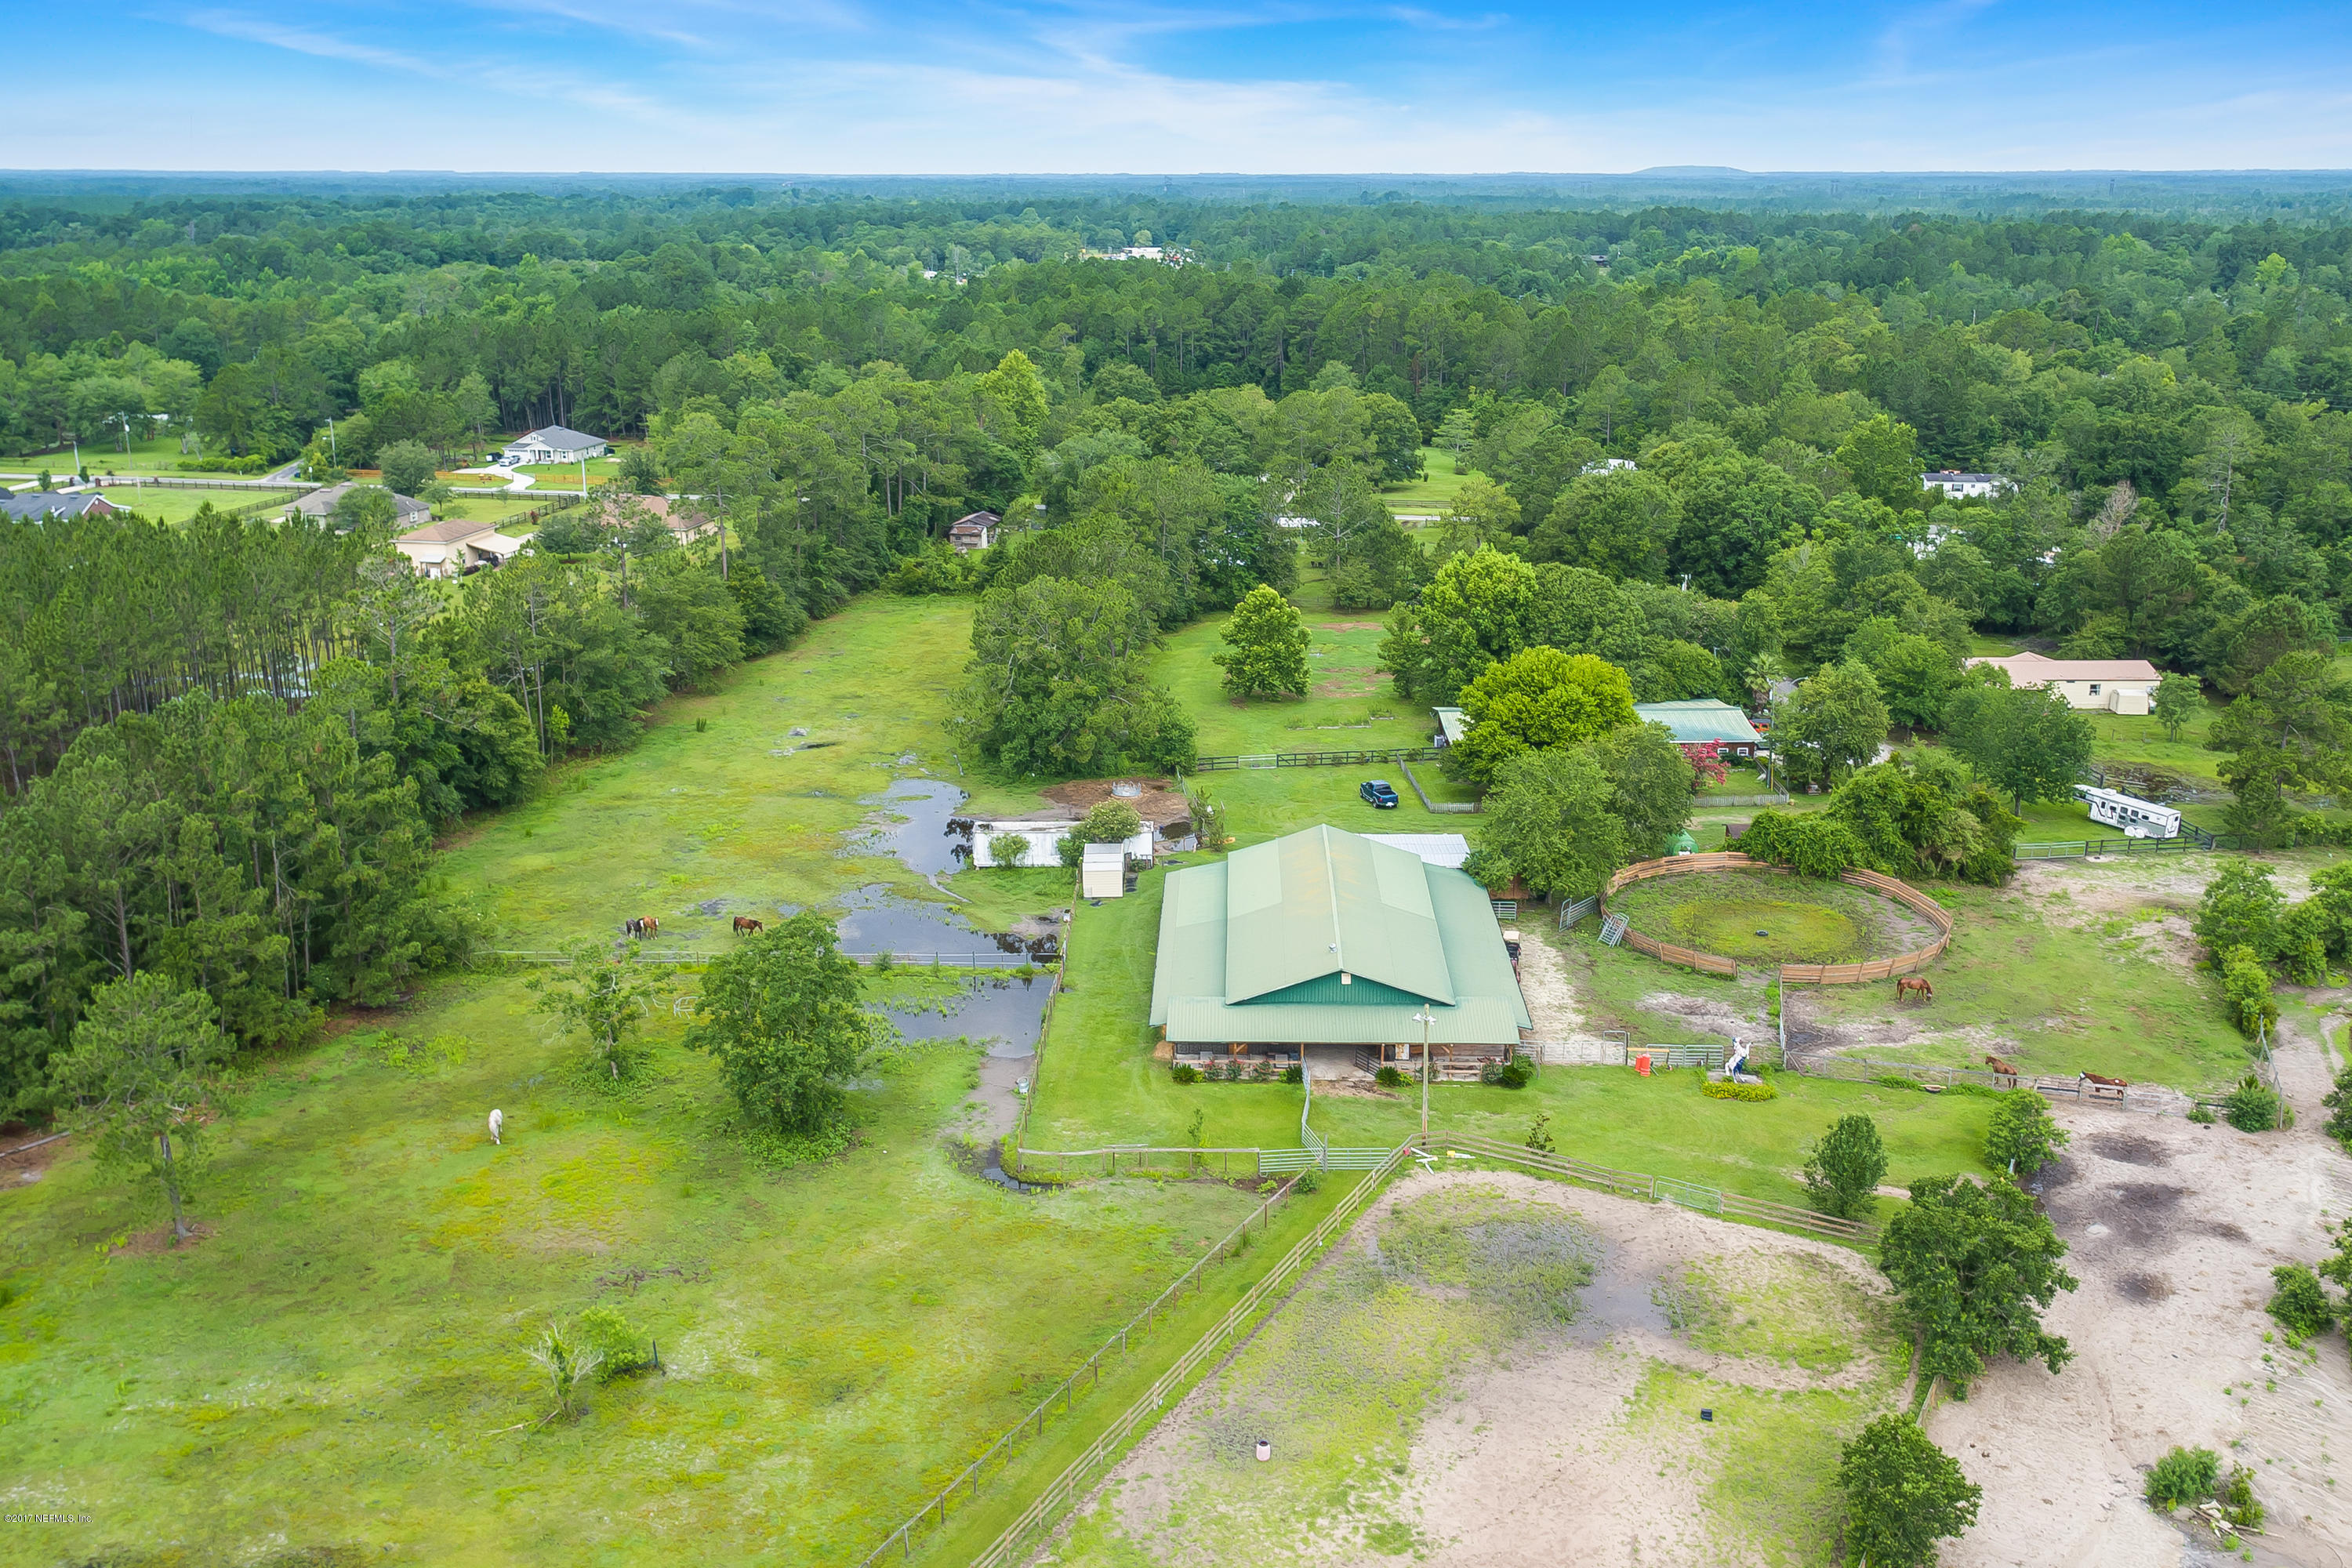 5255 MANNING CEMETERY, JACKSONVILLE, FLORIDA 32234, 6 Bedrooms Bedrooms, ,4 BathroomsBathrooms,Investment / MultiFamily,For sale,MANNING CEMETERY,889330